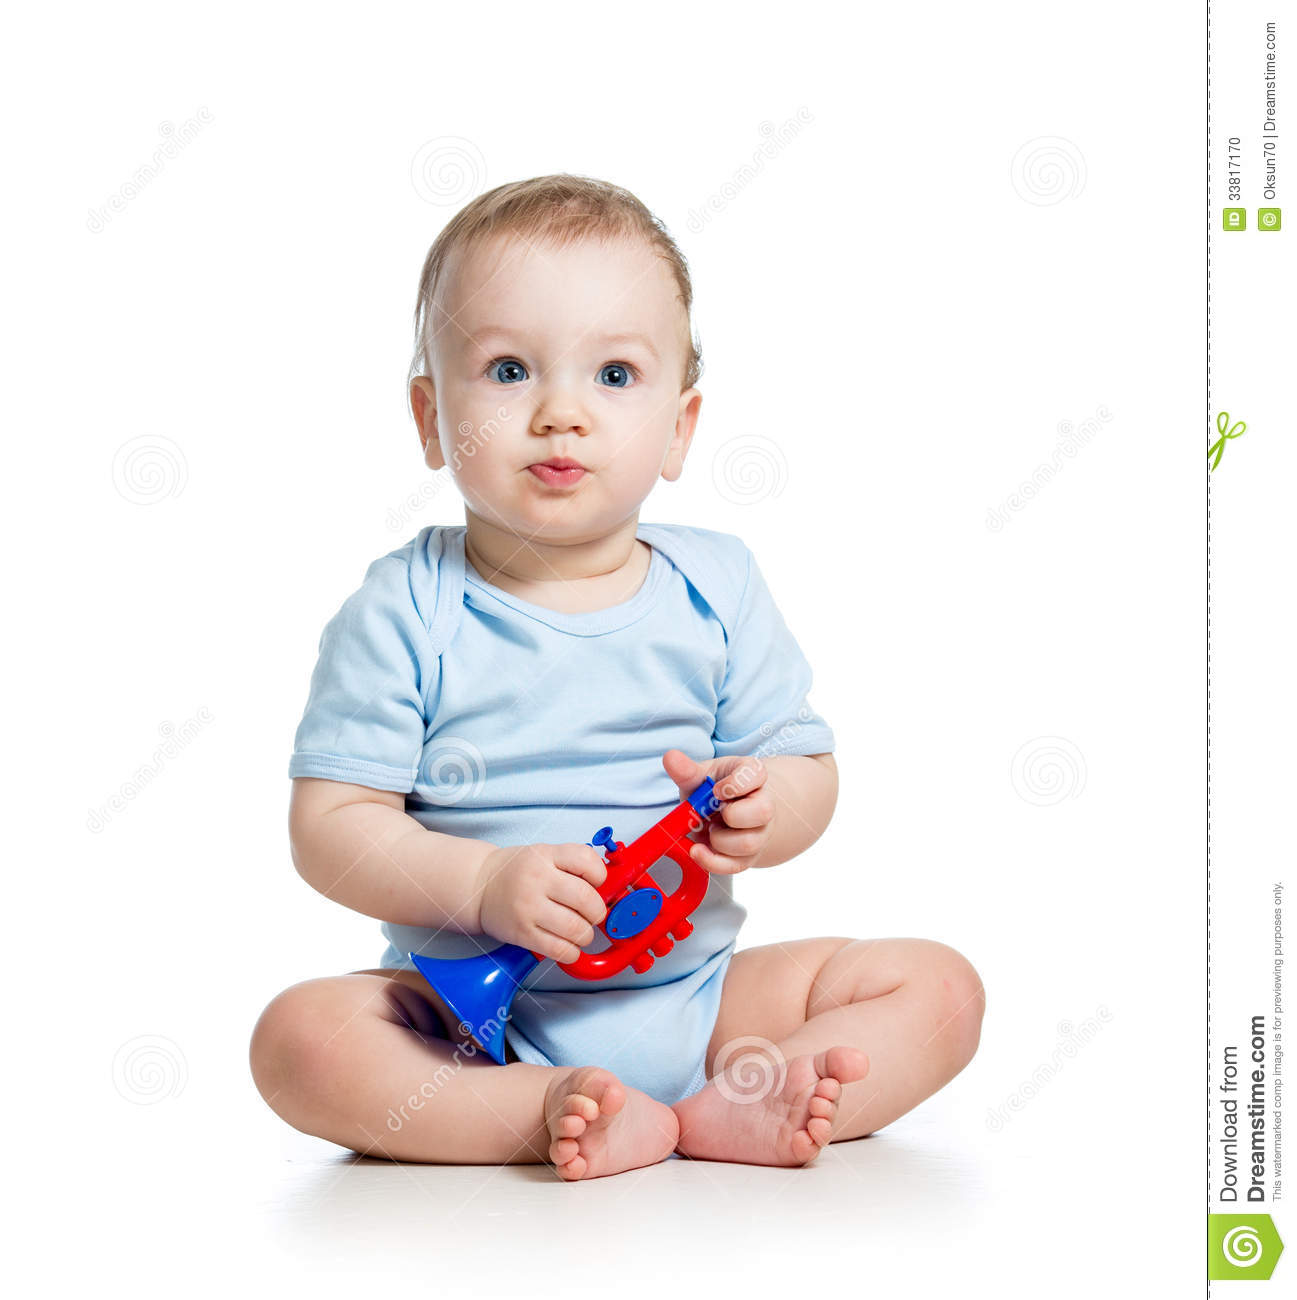 Boy Toys Baby : Boy baby playing toy stock photo image